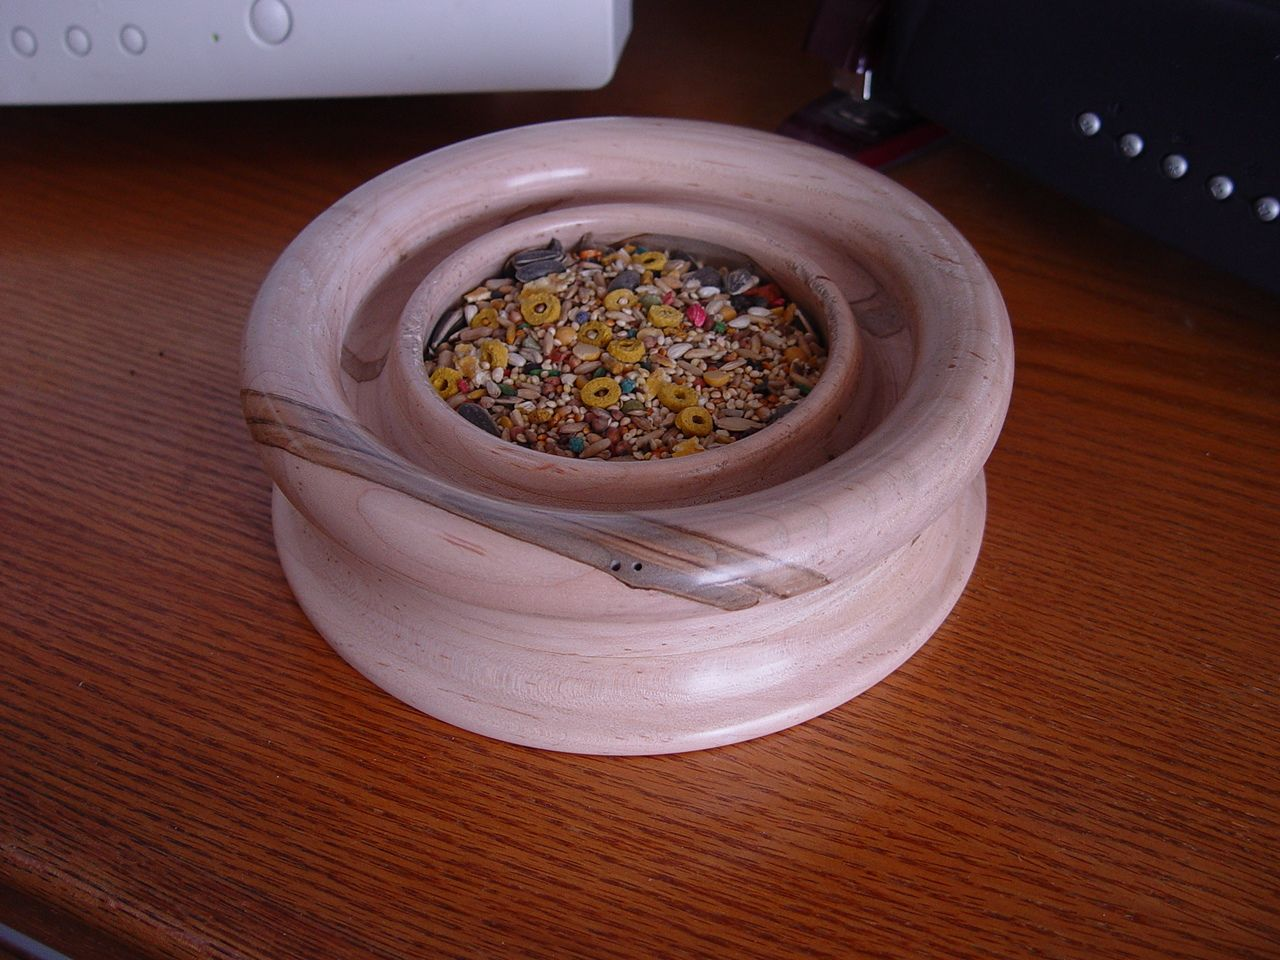 Ambrosia Maple Bowl I Made For My Bird To Sit On And Eat Seed Bowl Ambrosia Dog Bowls